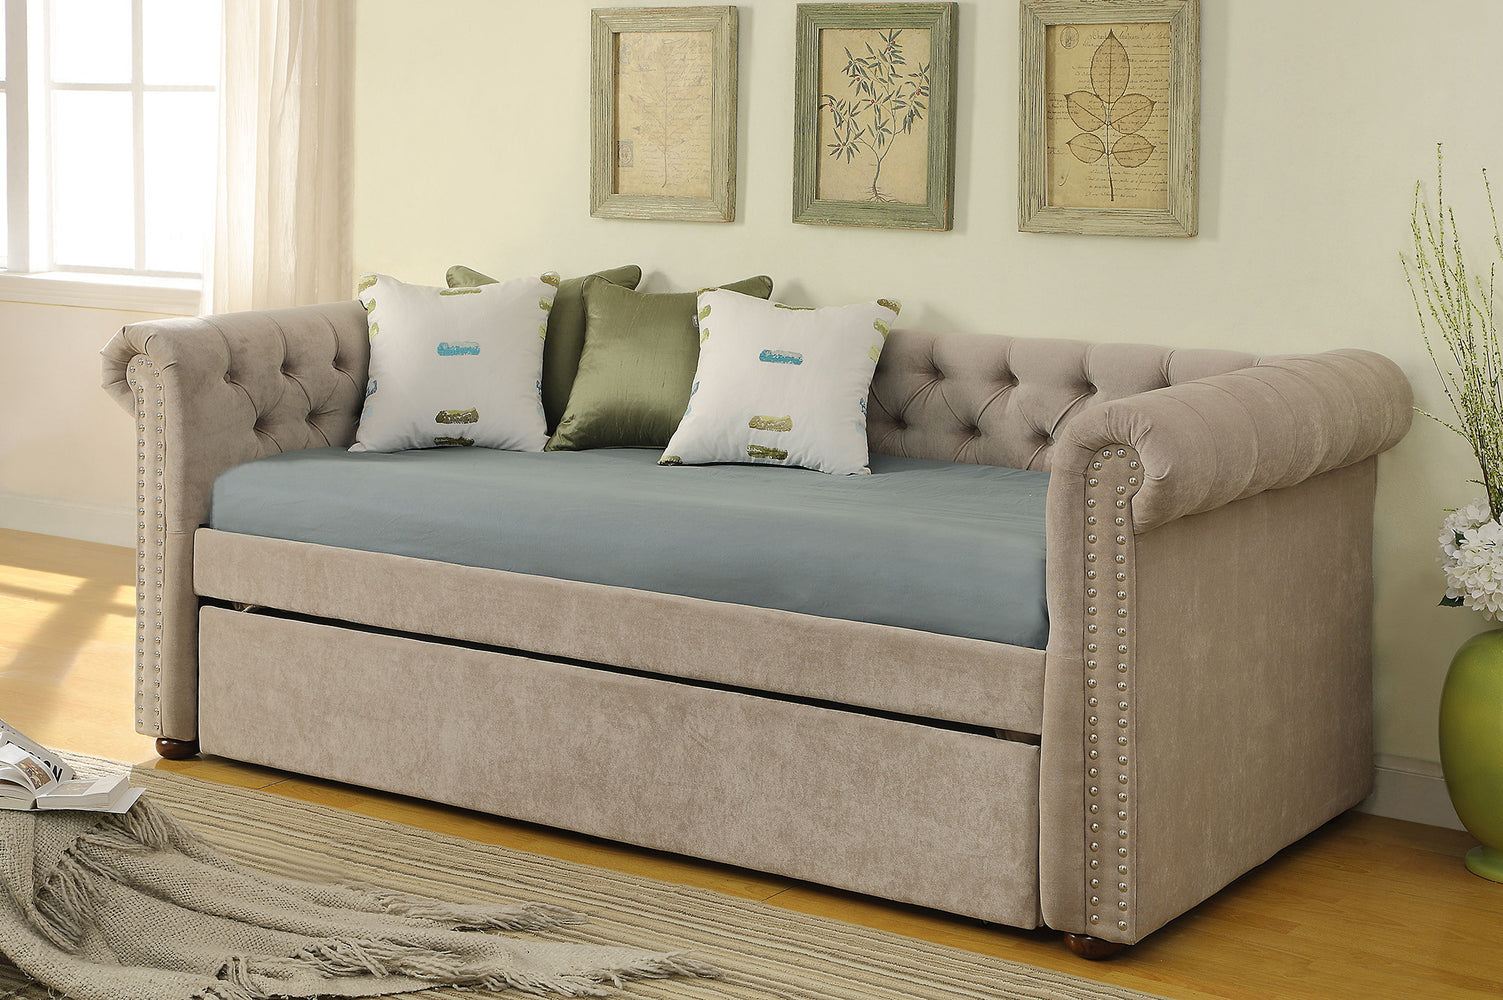 Kensy day bed